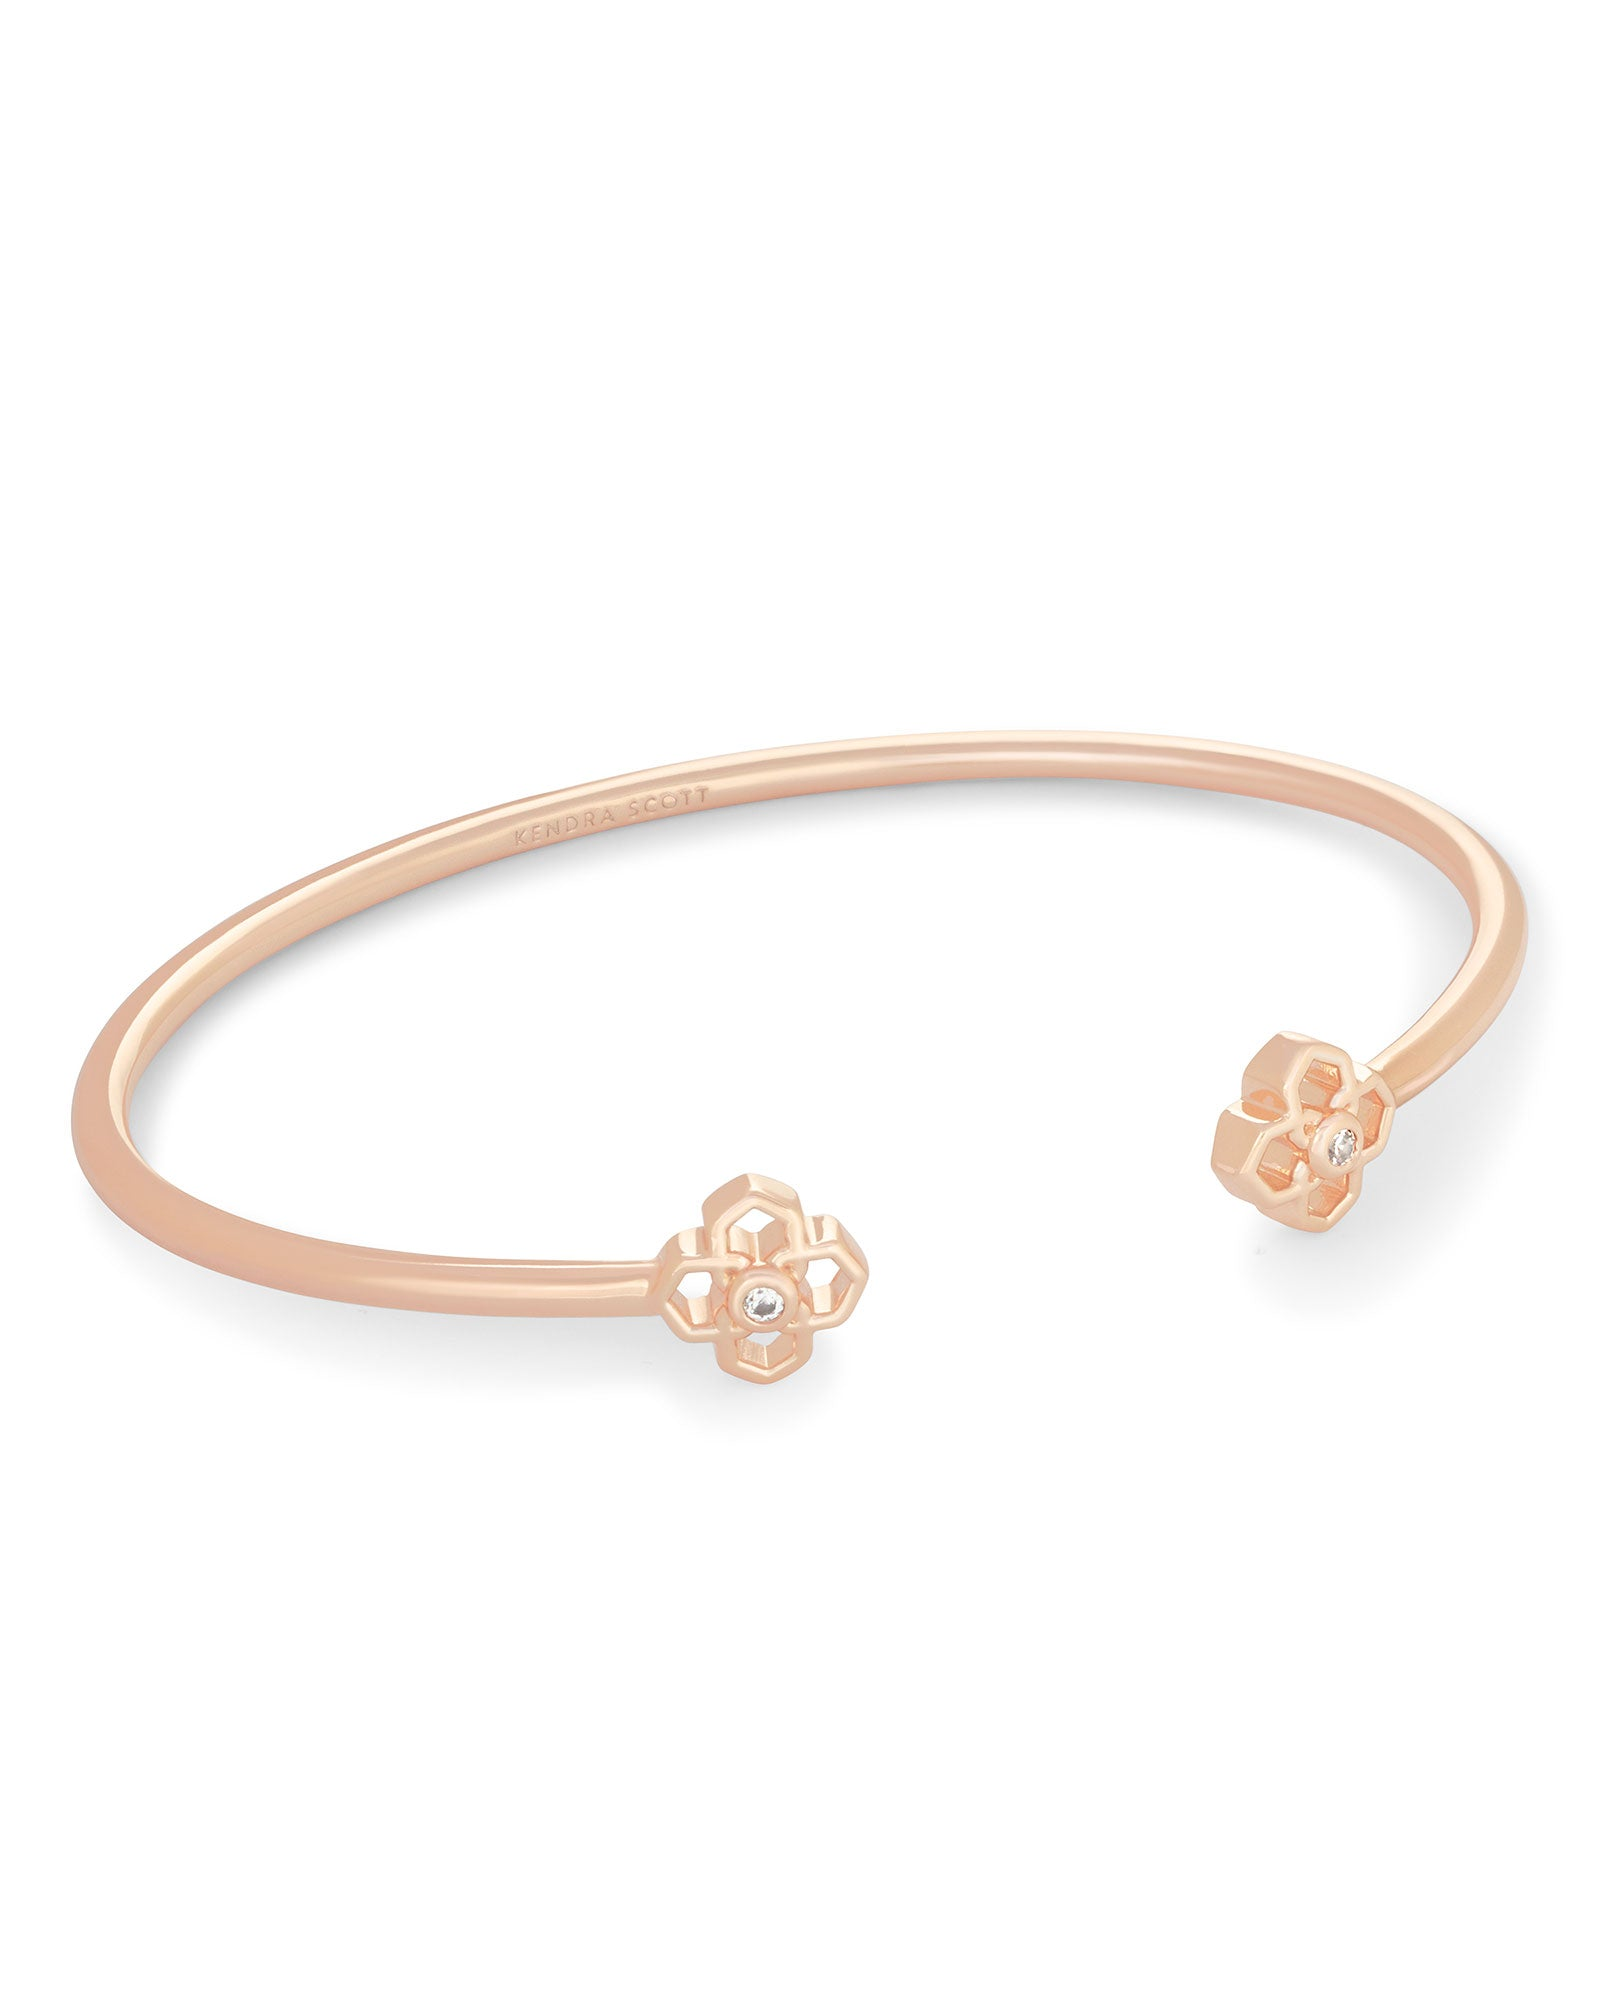 Rue Pinch Cuff Bracelet in Rose Gold